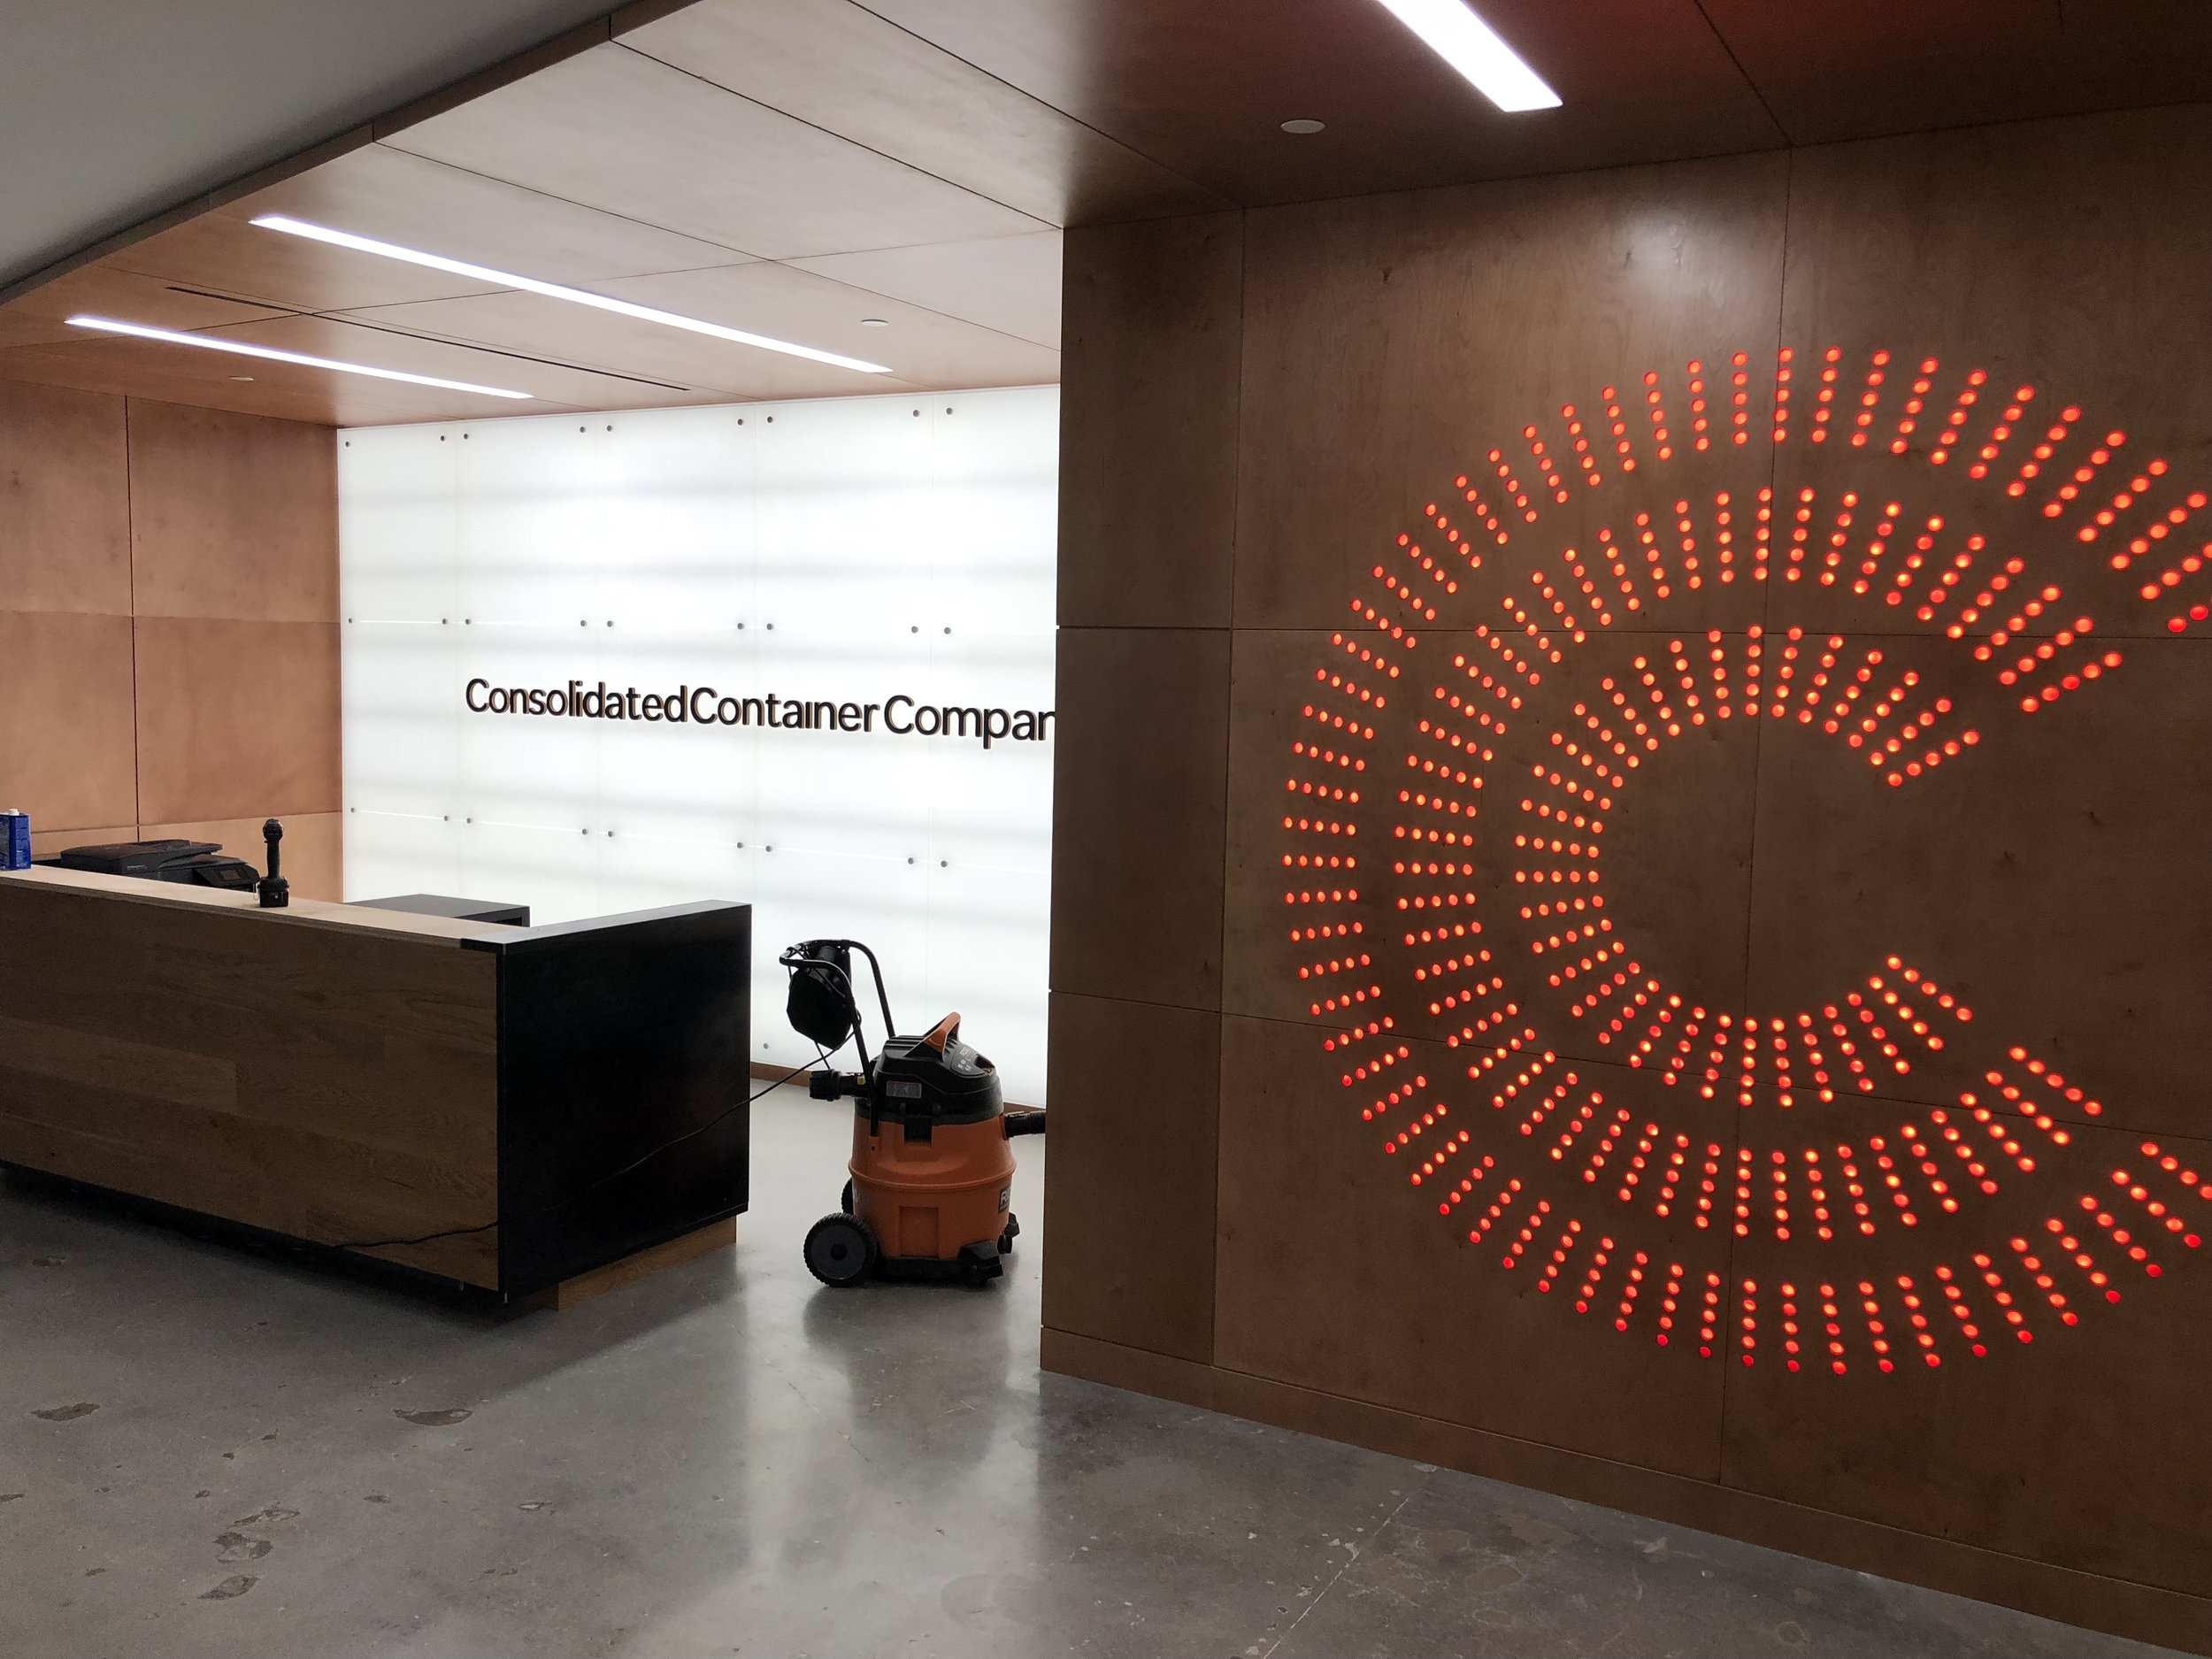 This was a fun day! We installed this 8 foot tall logo, which was CNC-machined in six different panels. The panels were put together and then sandwiched with red-tinted plexiglass between over 3,000 LED lights. We then pivoted the entire unit up onto the wall. That was a few tense moments!